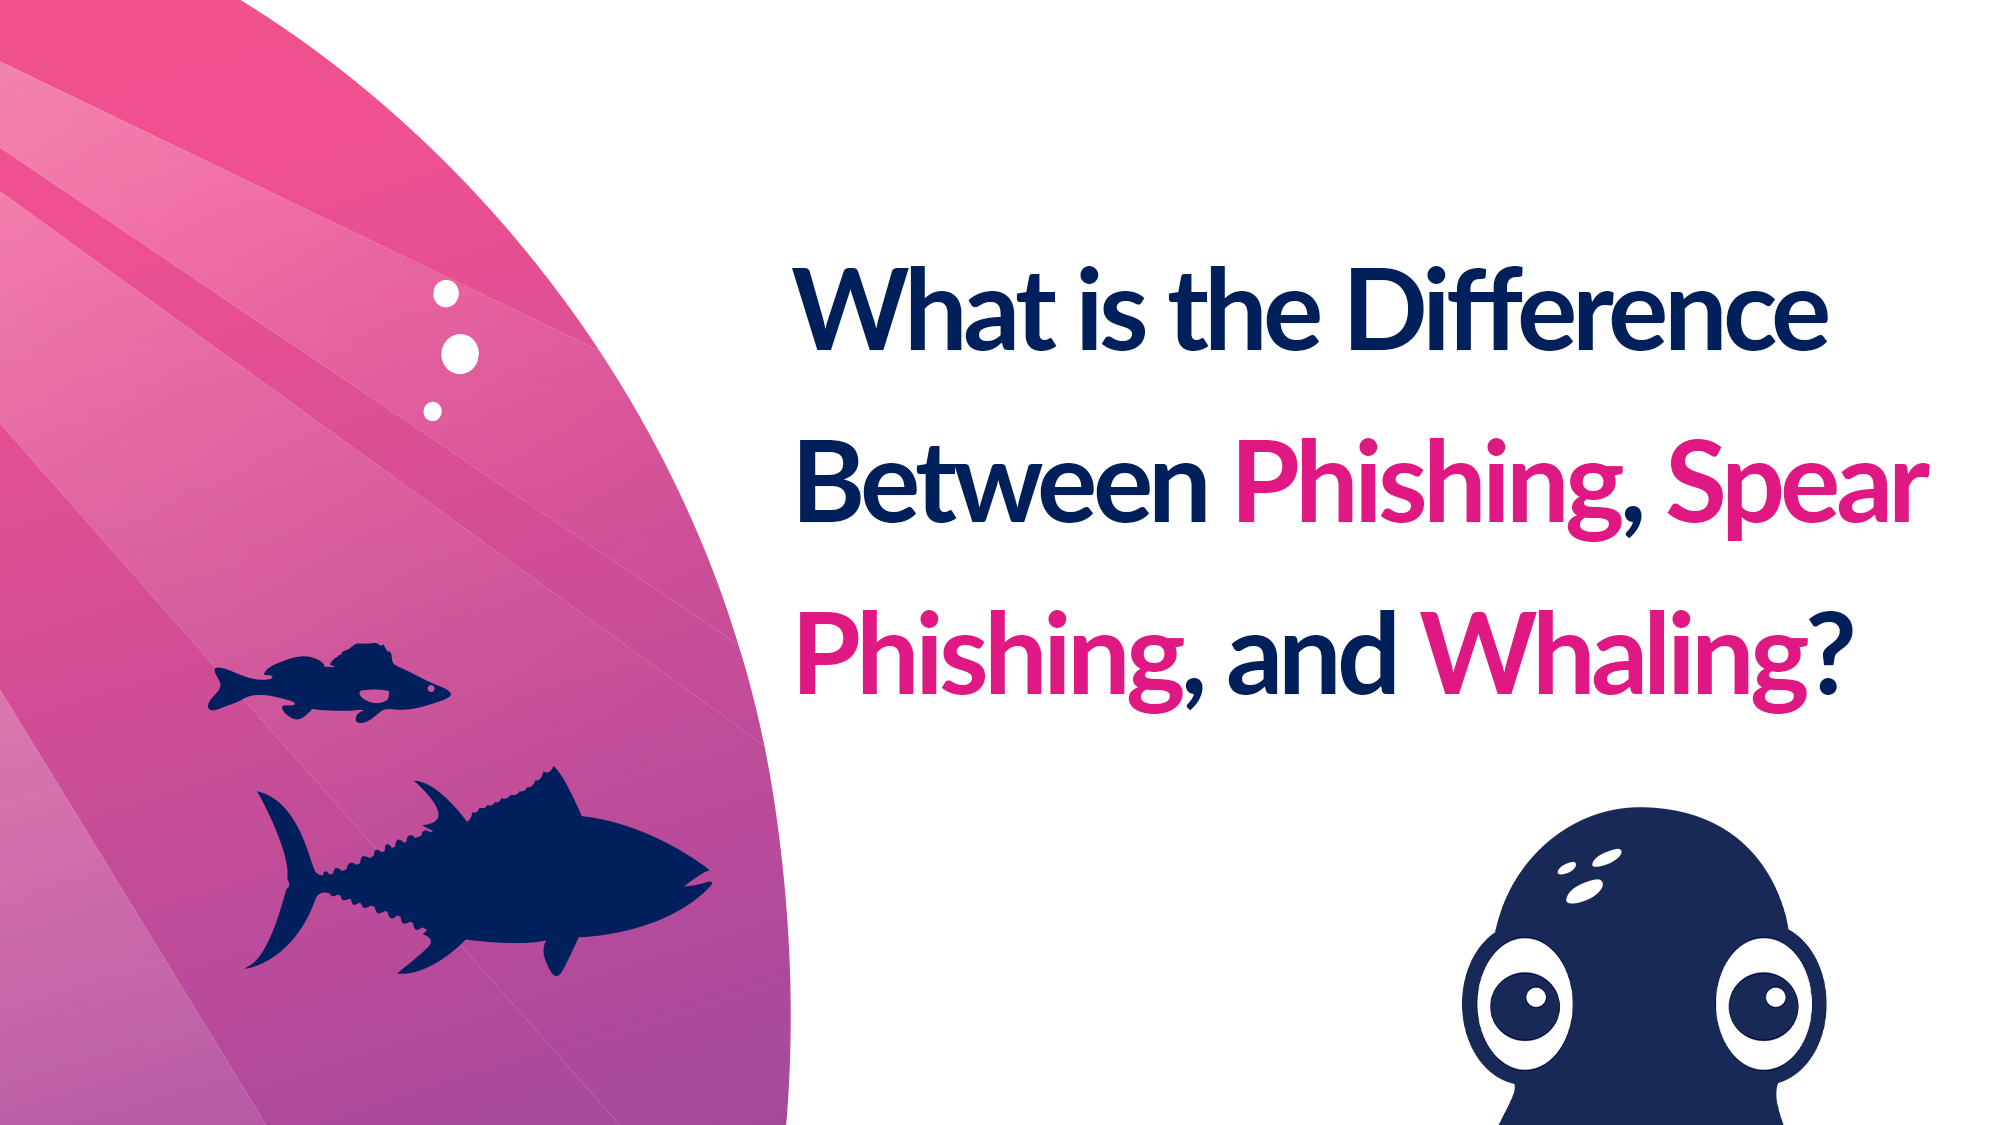 What is the Difference Between Phishing, Spear Phishing, and Whaling?